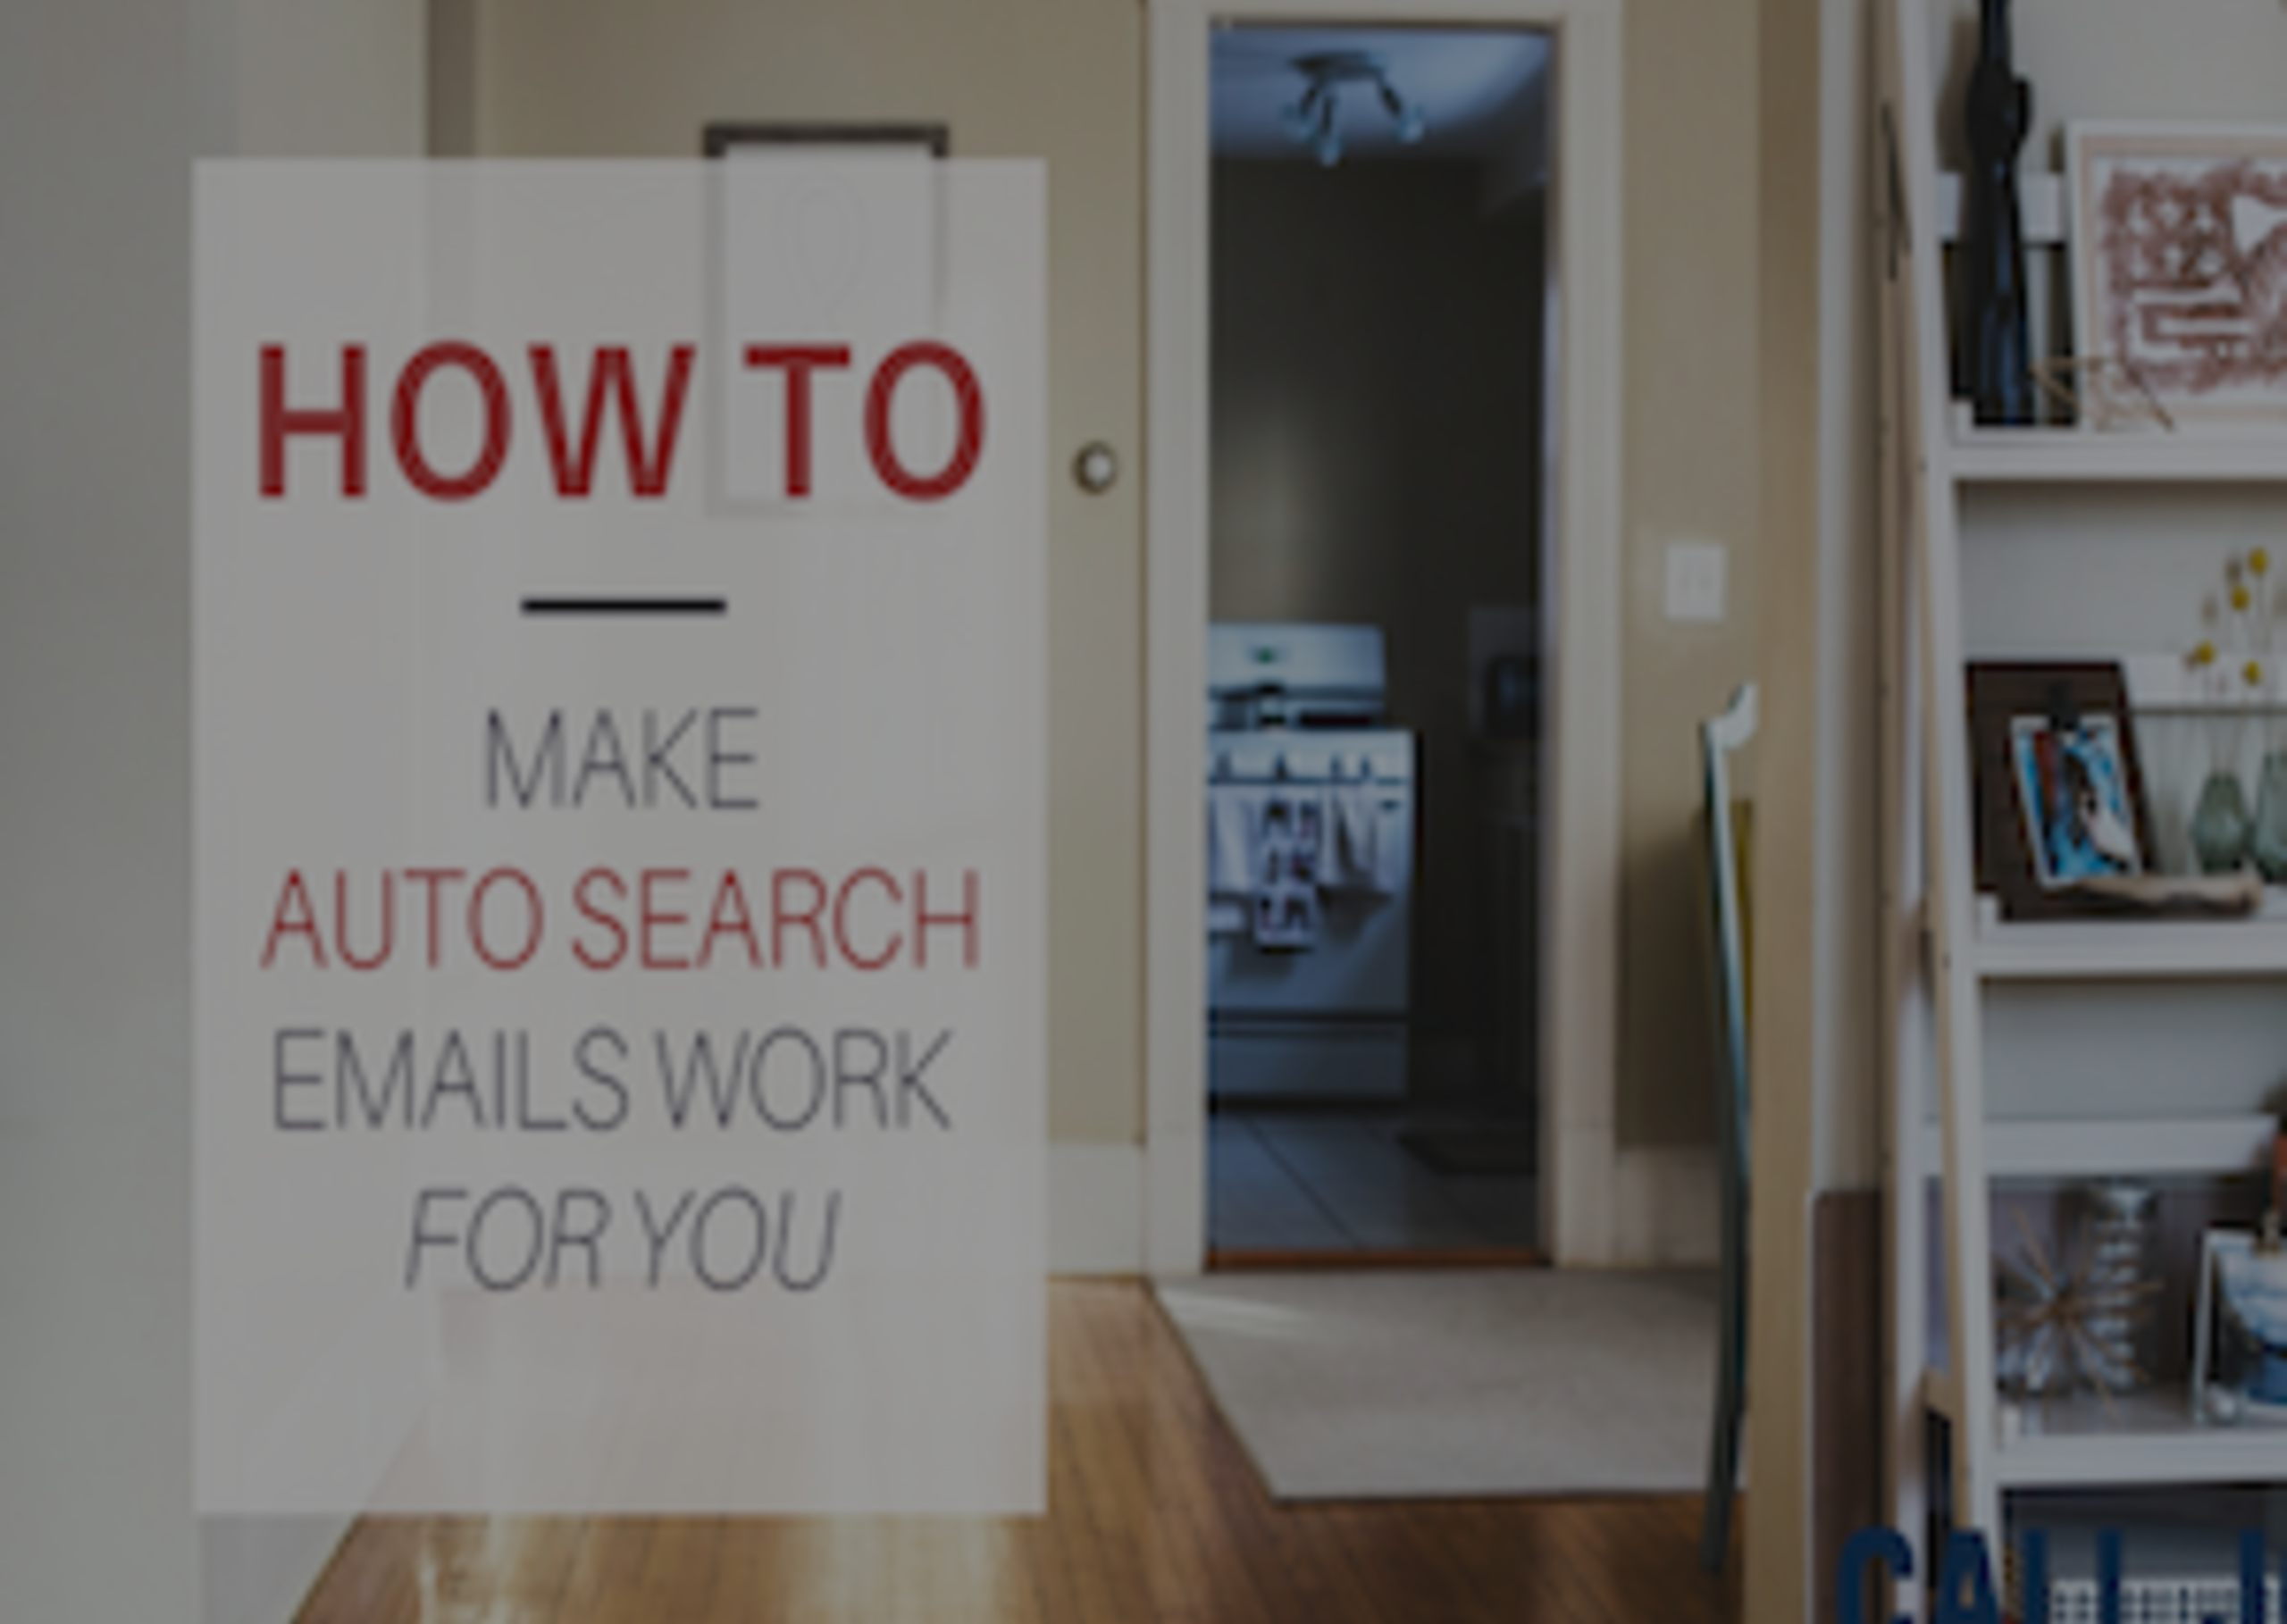 How To Make Auto-Search Emails Work for You